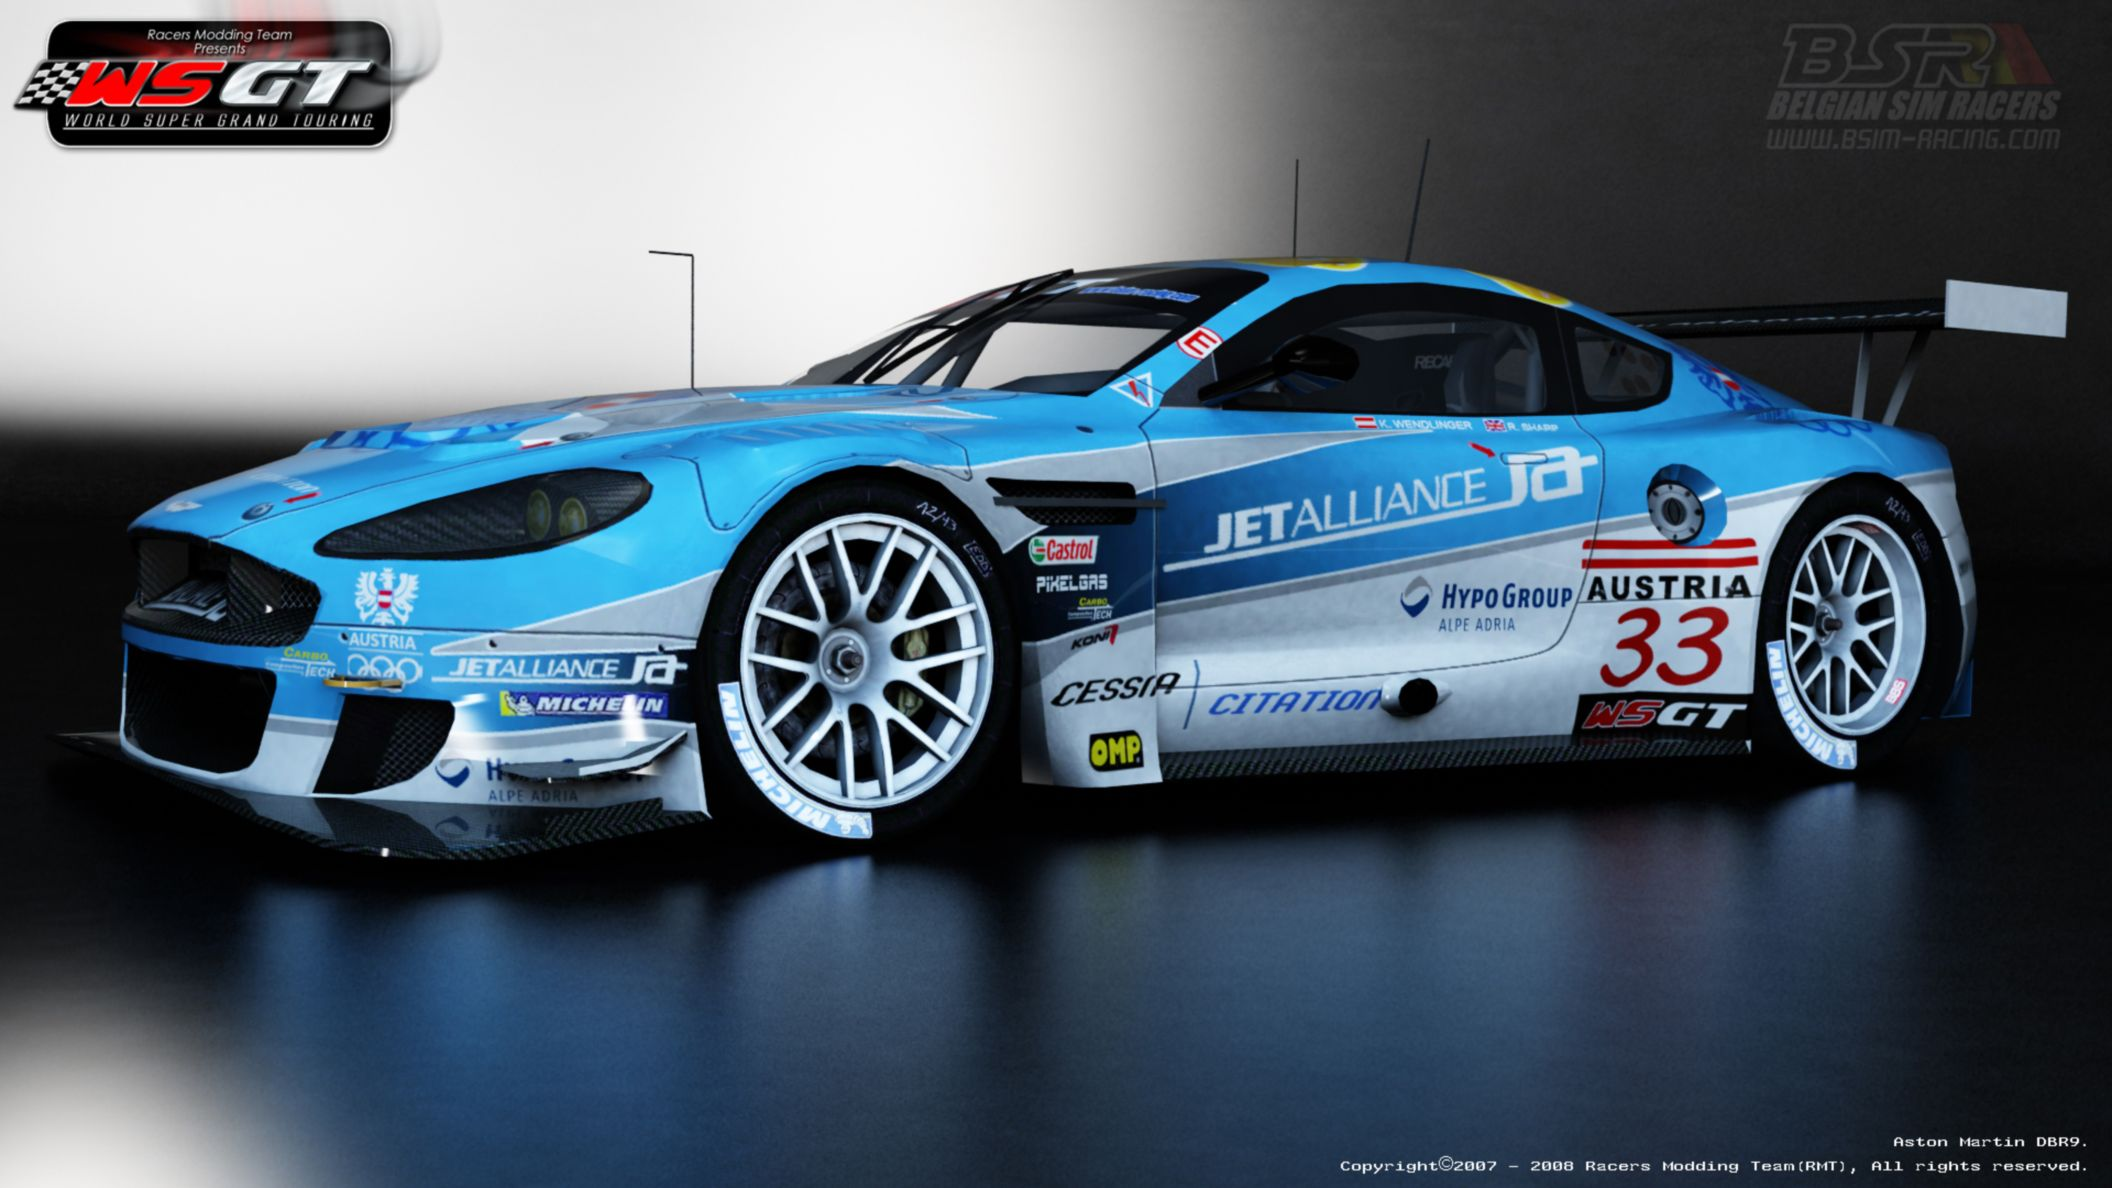 Download free HD Race Car Gt Tour HD Wallpaper, image